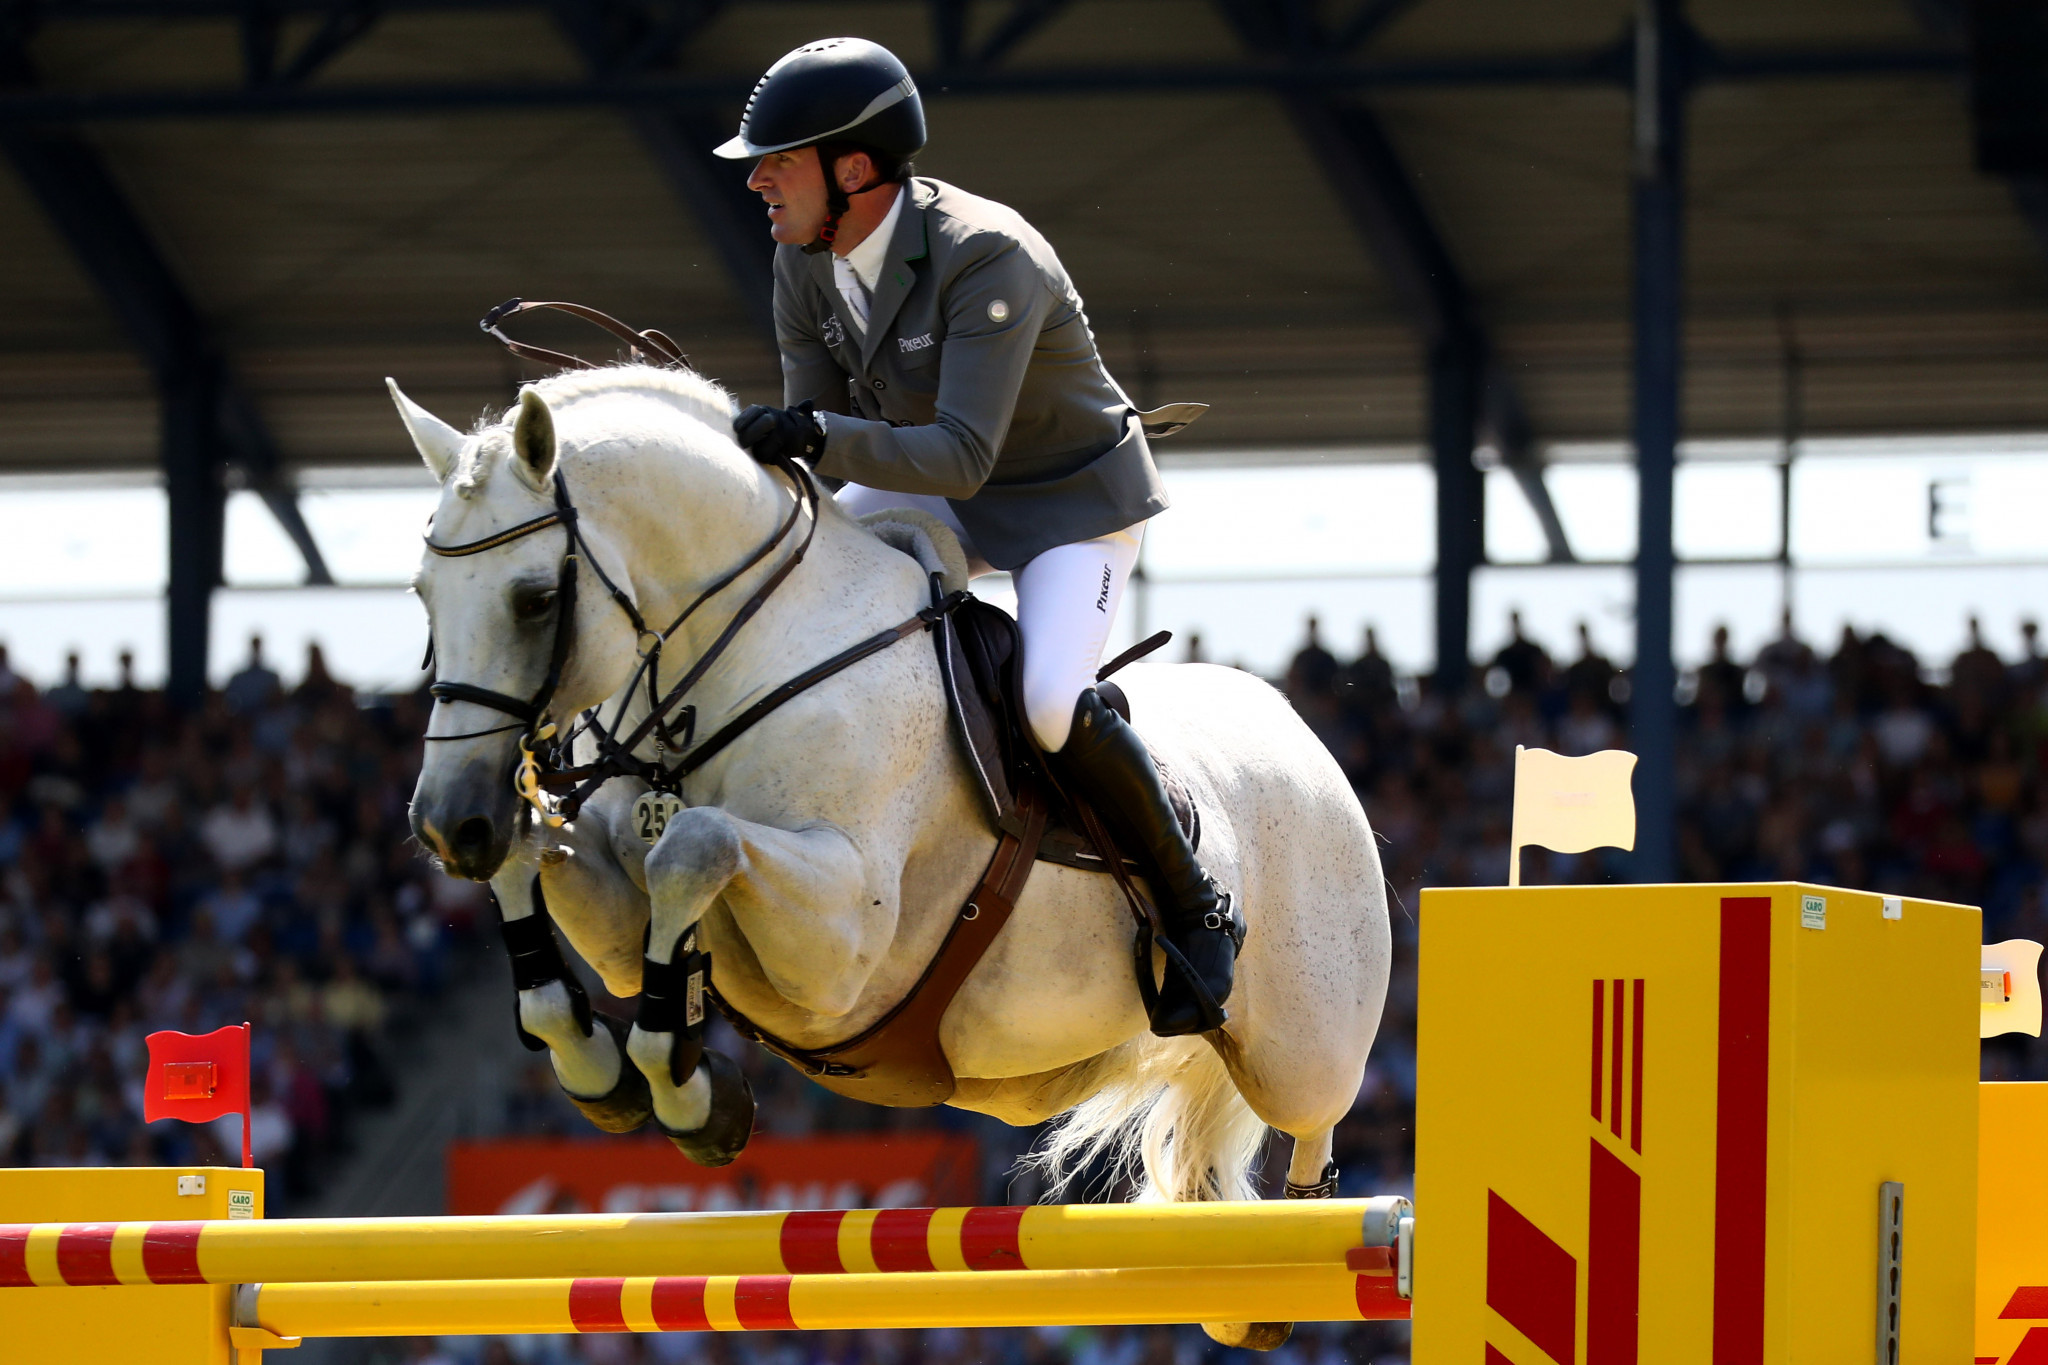 Philipp Weishaupt was part of the victorious German team ©Getty Images